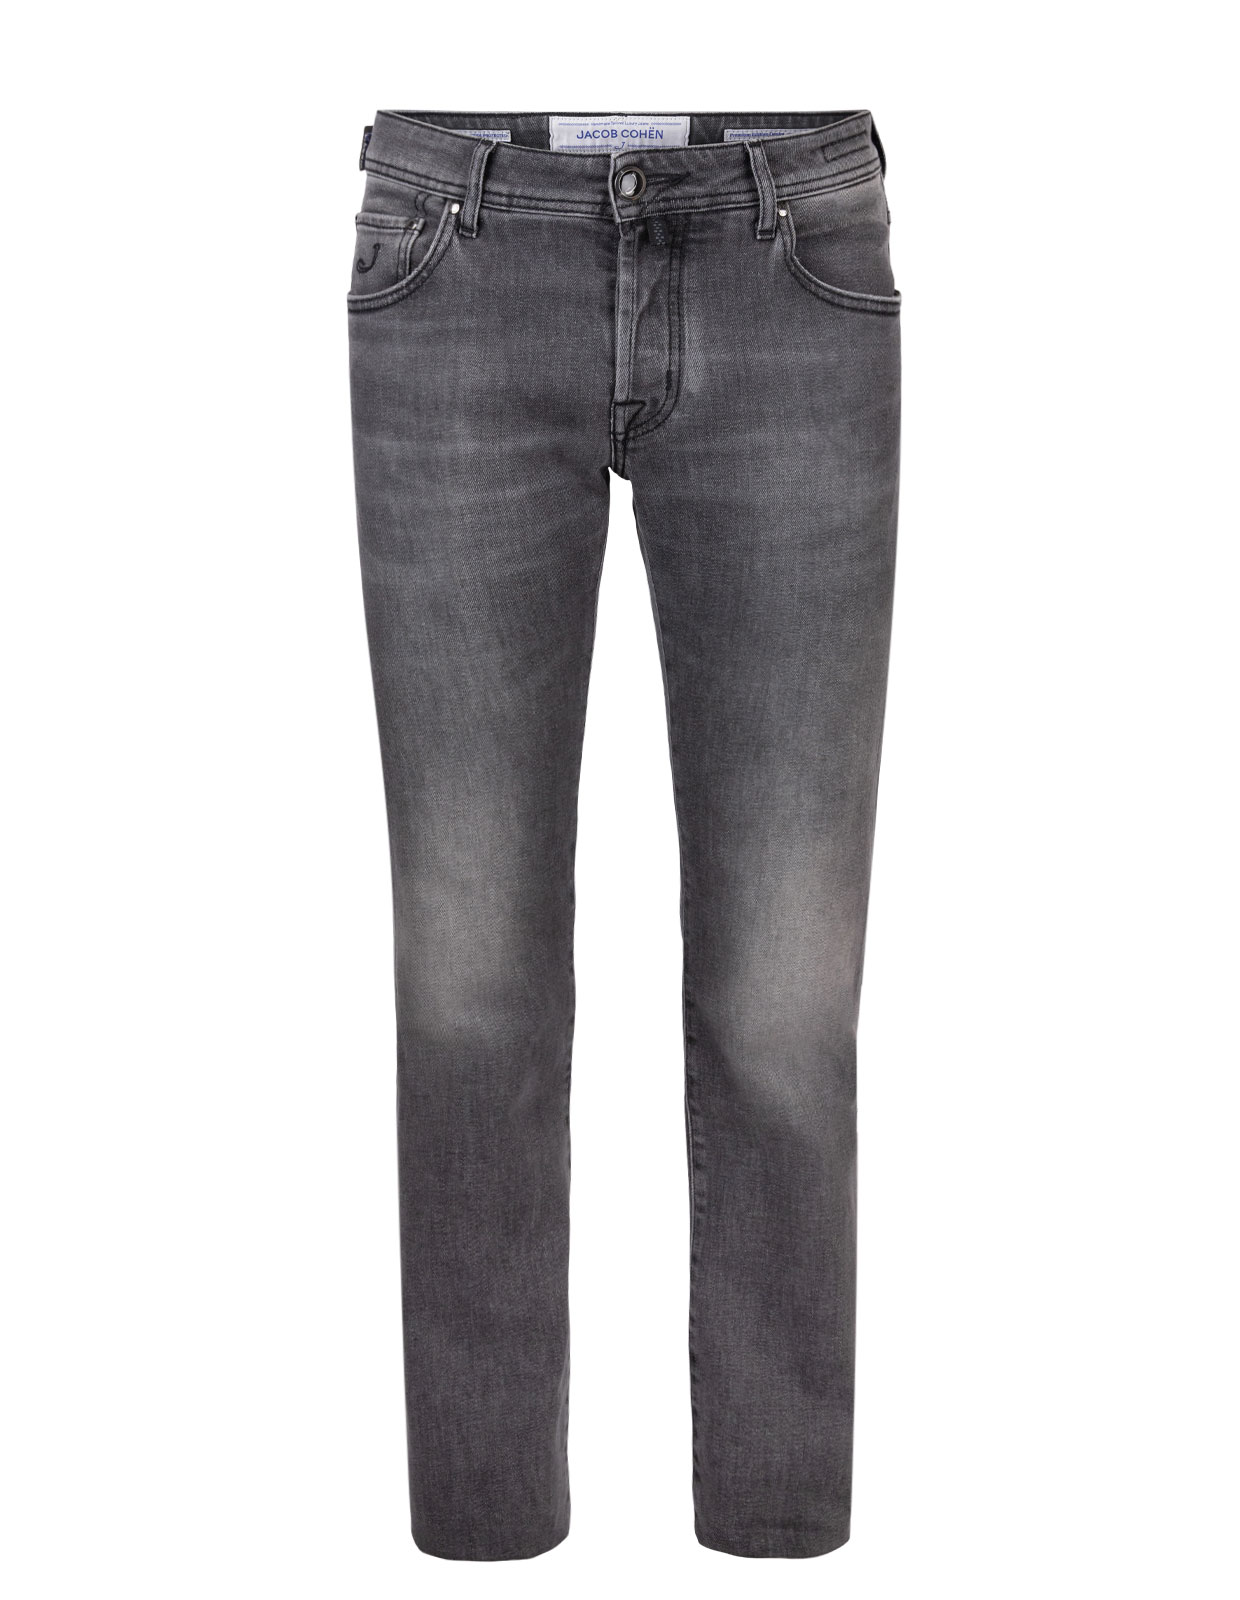 J622 Jeans 01865 Denim Stretch Grey